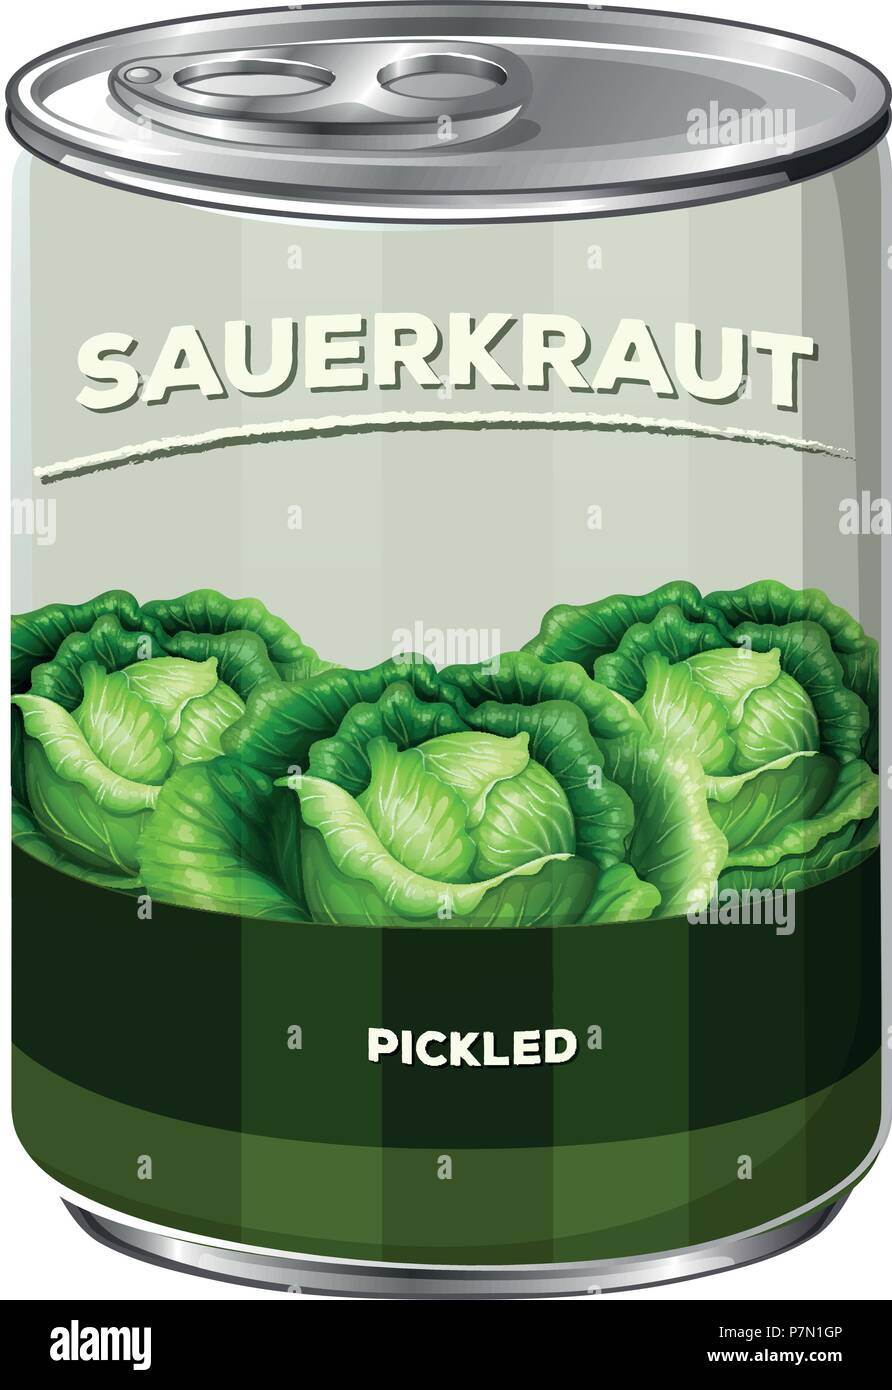 A Can of Sauerkraut illustration - Stock Vector